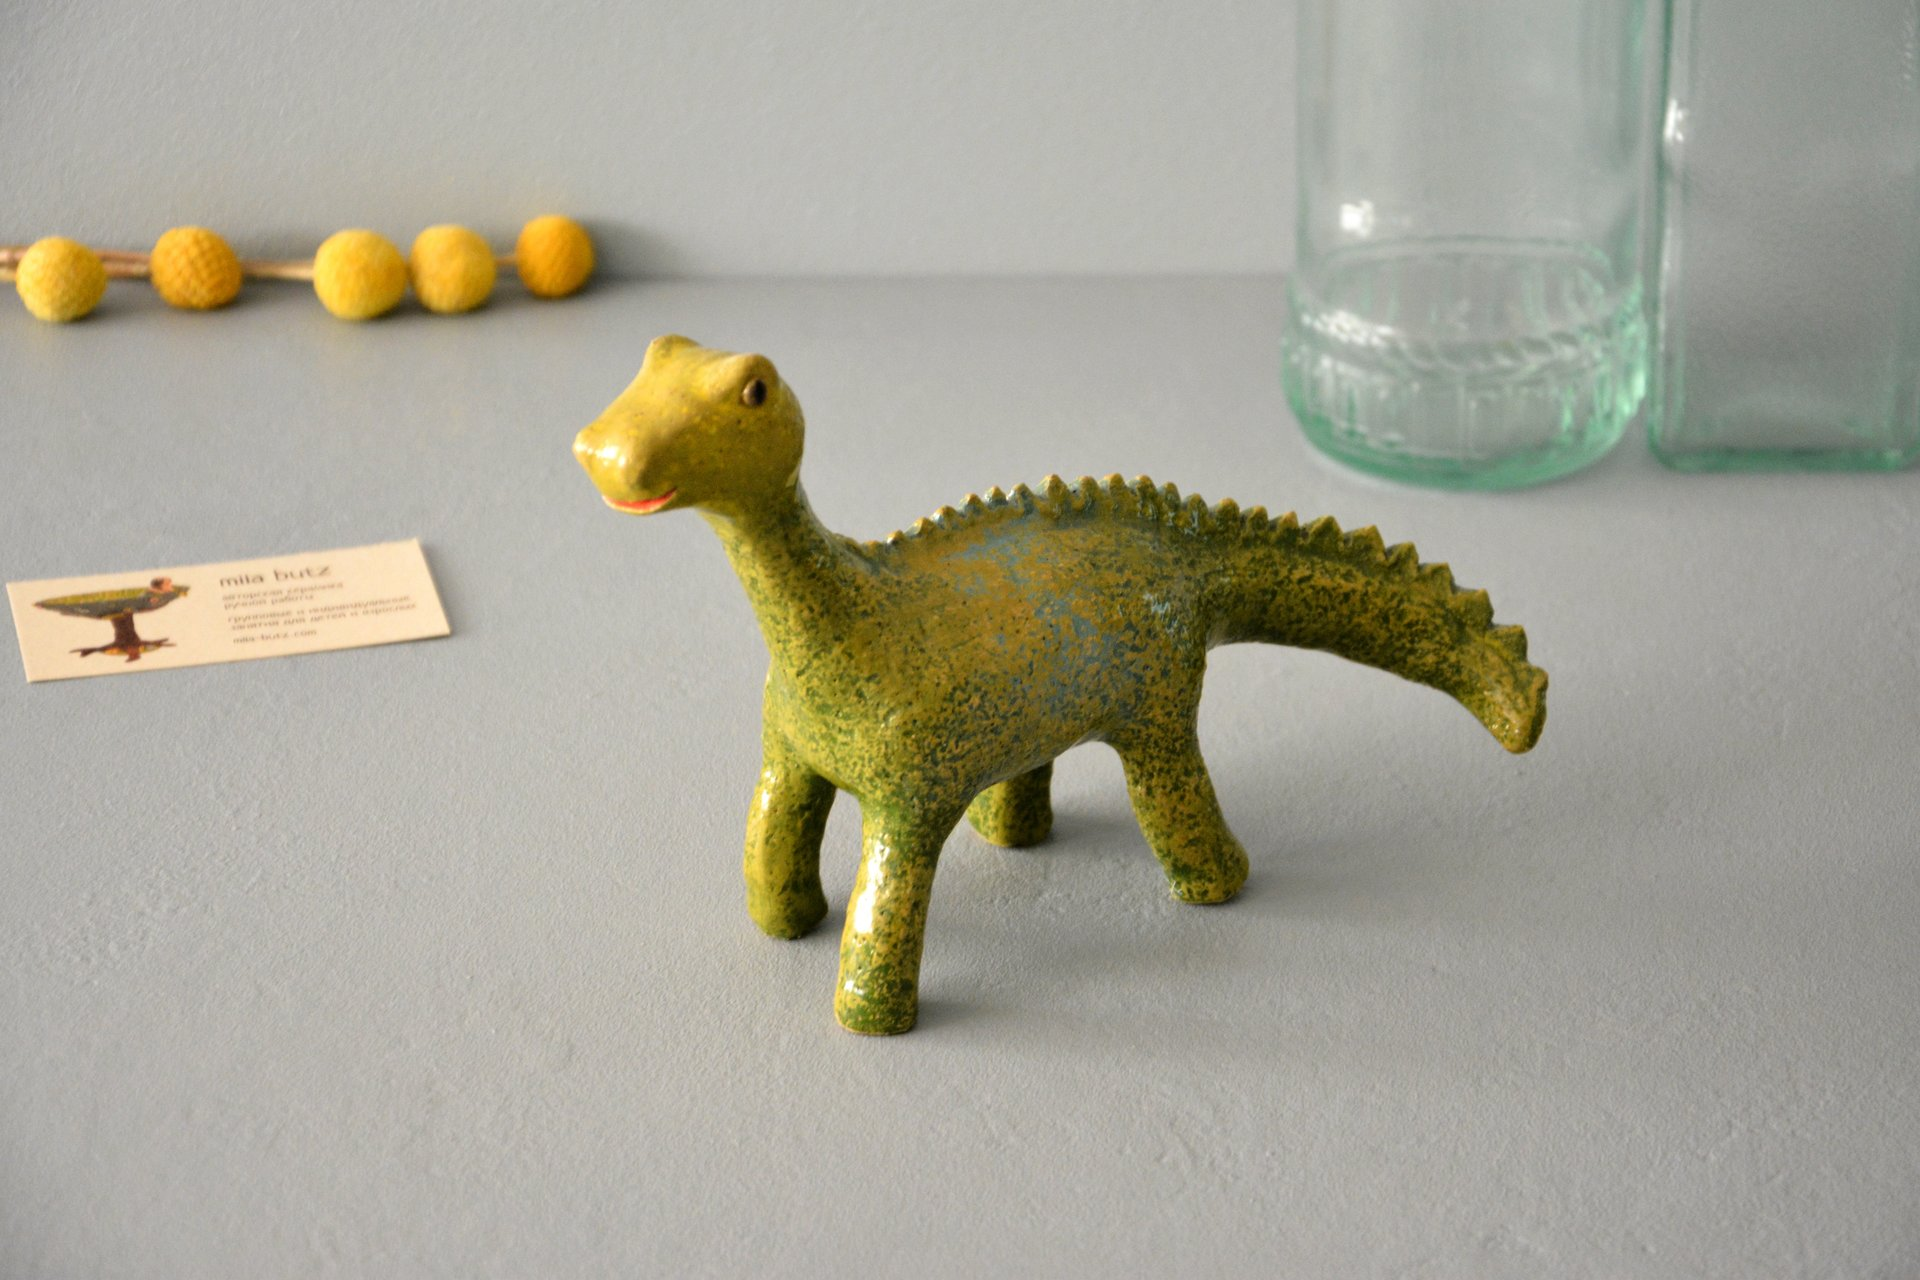 Dino - Ceramic other figures, height - 20 cm, photo 1 of 5.